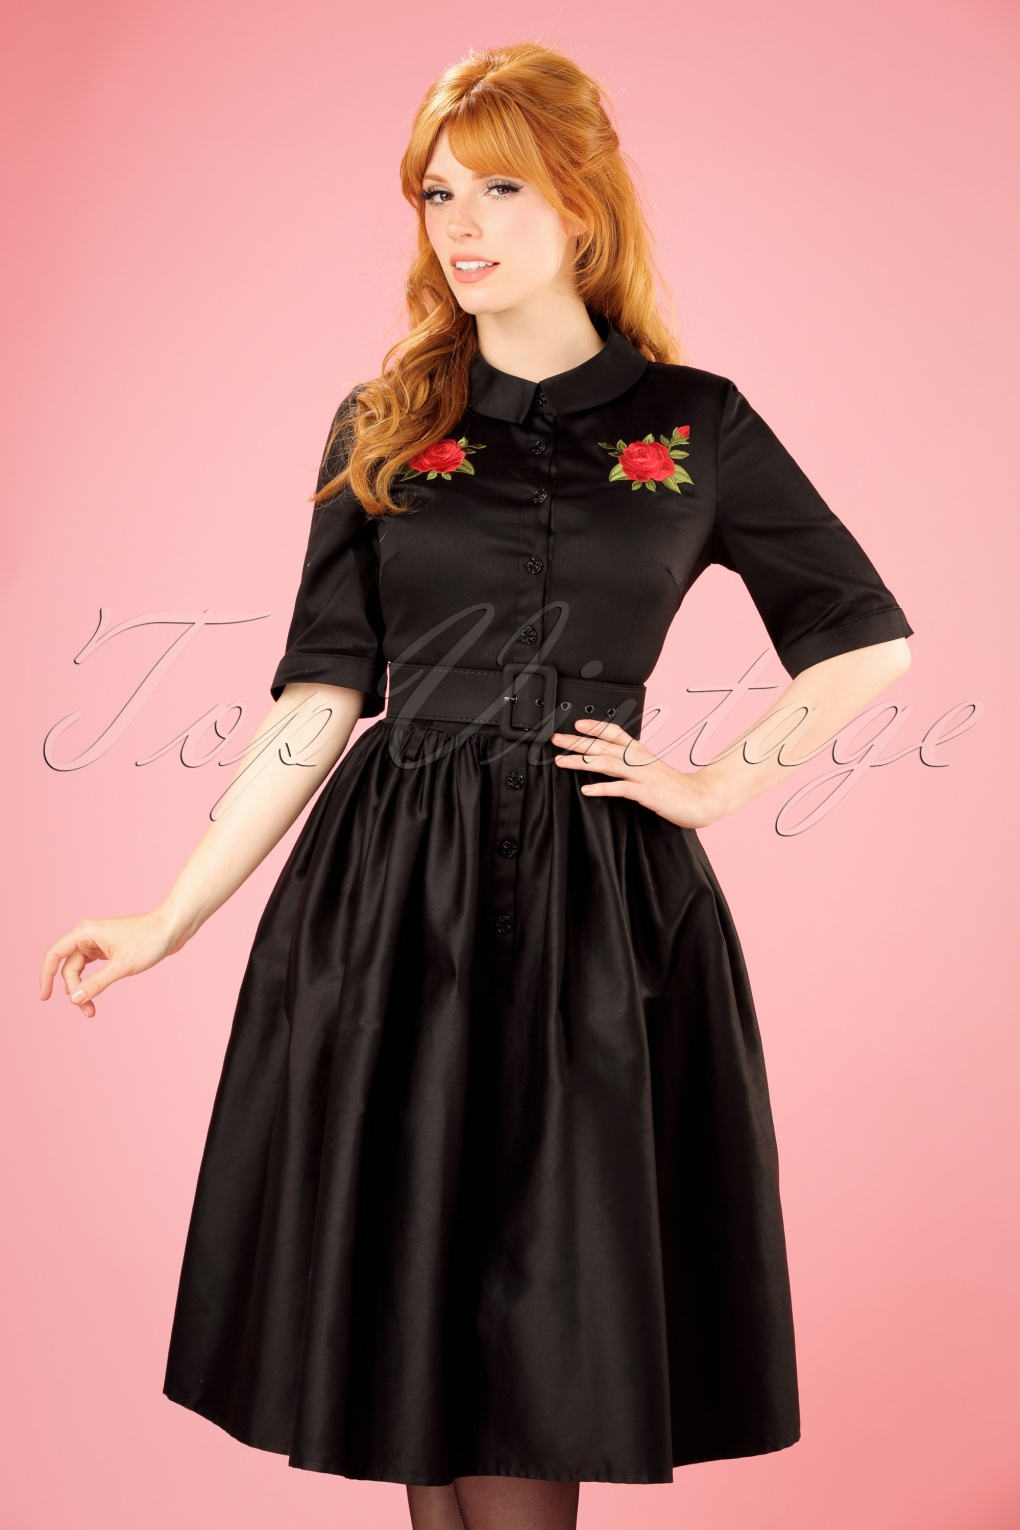 1950s Prom Dresses & Party Dresses 50s Aria Rose Shirt Dress in Black £89.97 AT vintagedancer.com